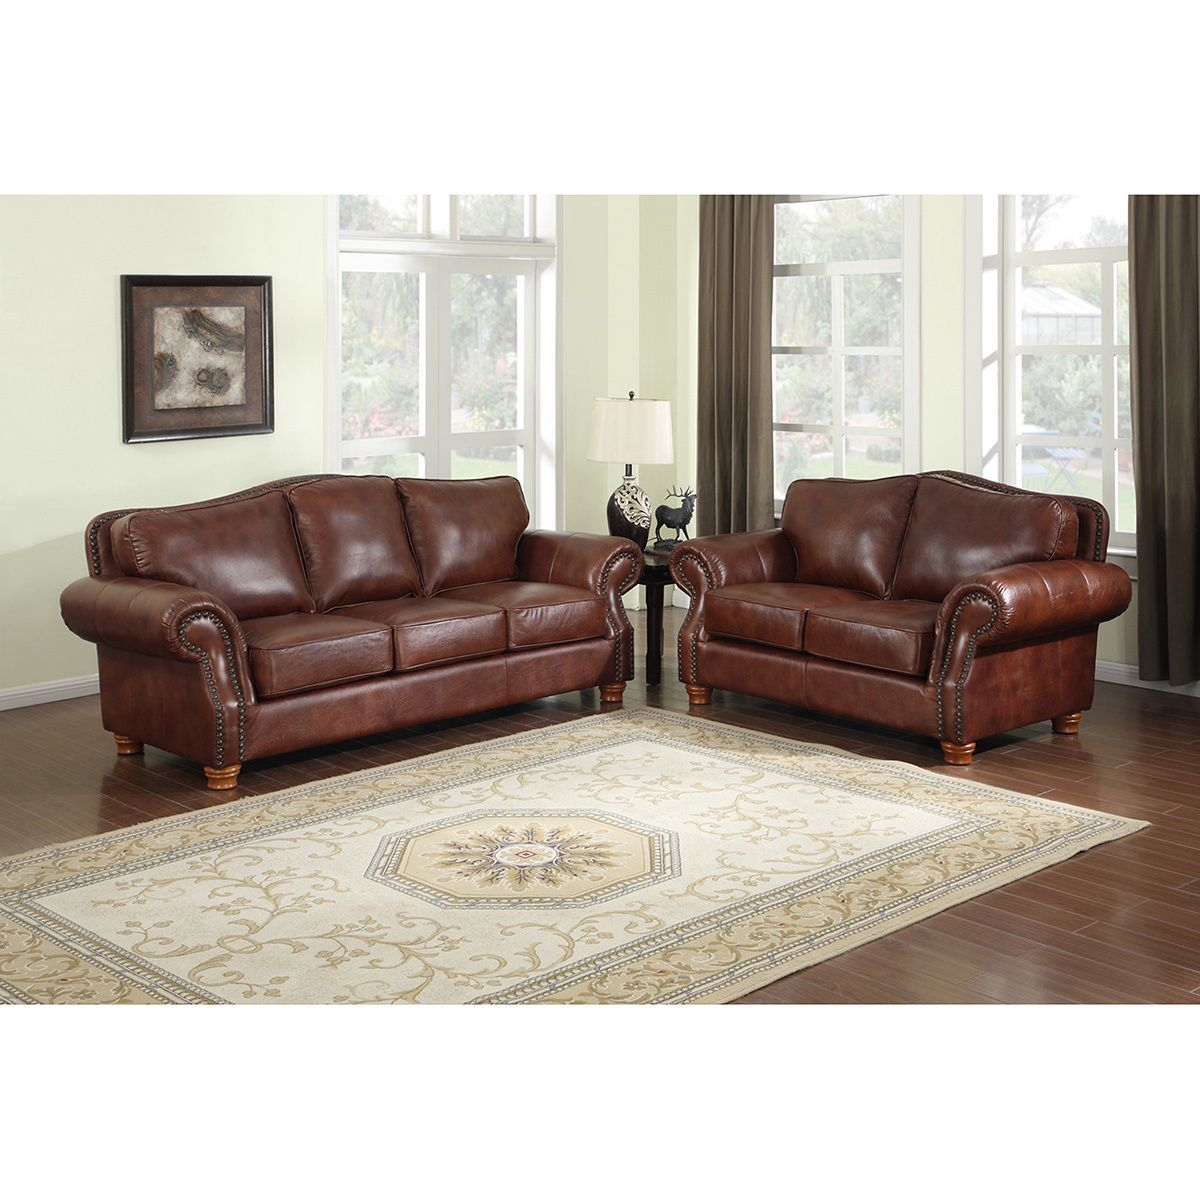 No matter your home's current style, leather furniture can add a timeless, homey, and even a luxurious twist to your décor. Brandon Distressed Whiskey Italian Leather Sofa and ...